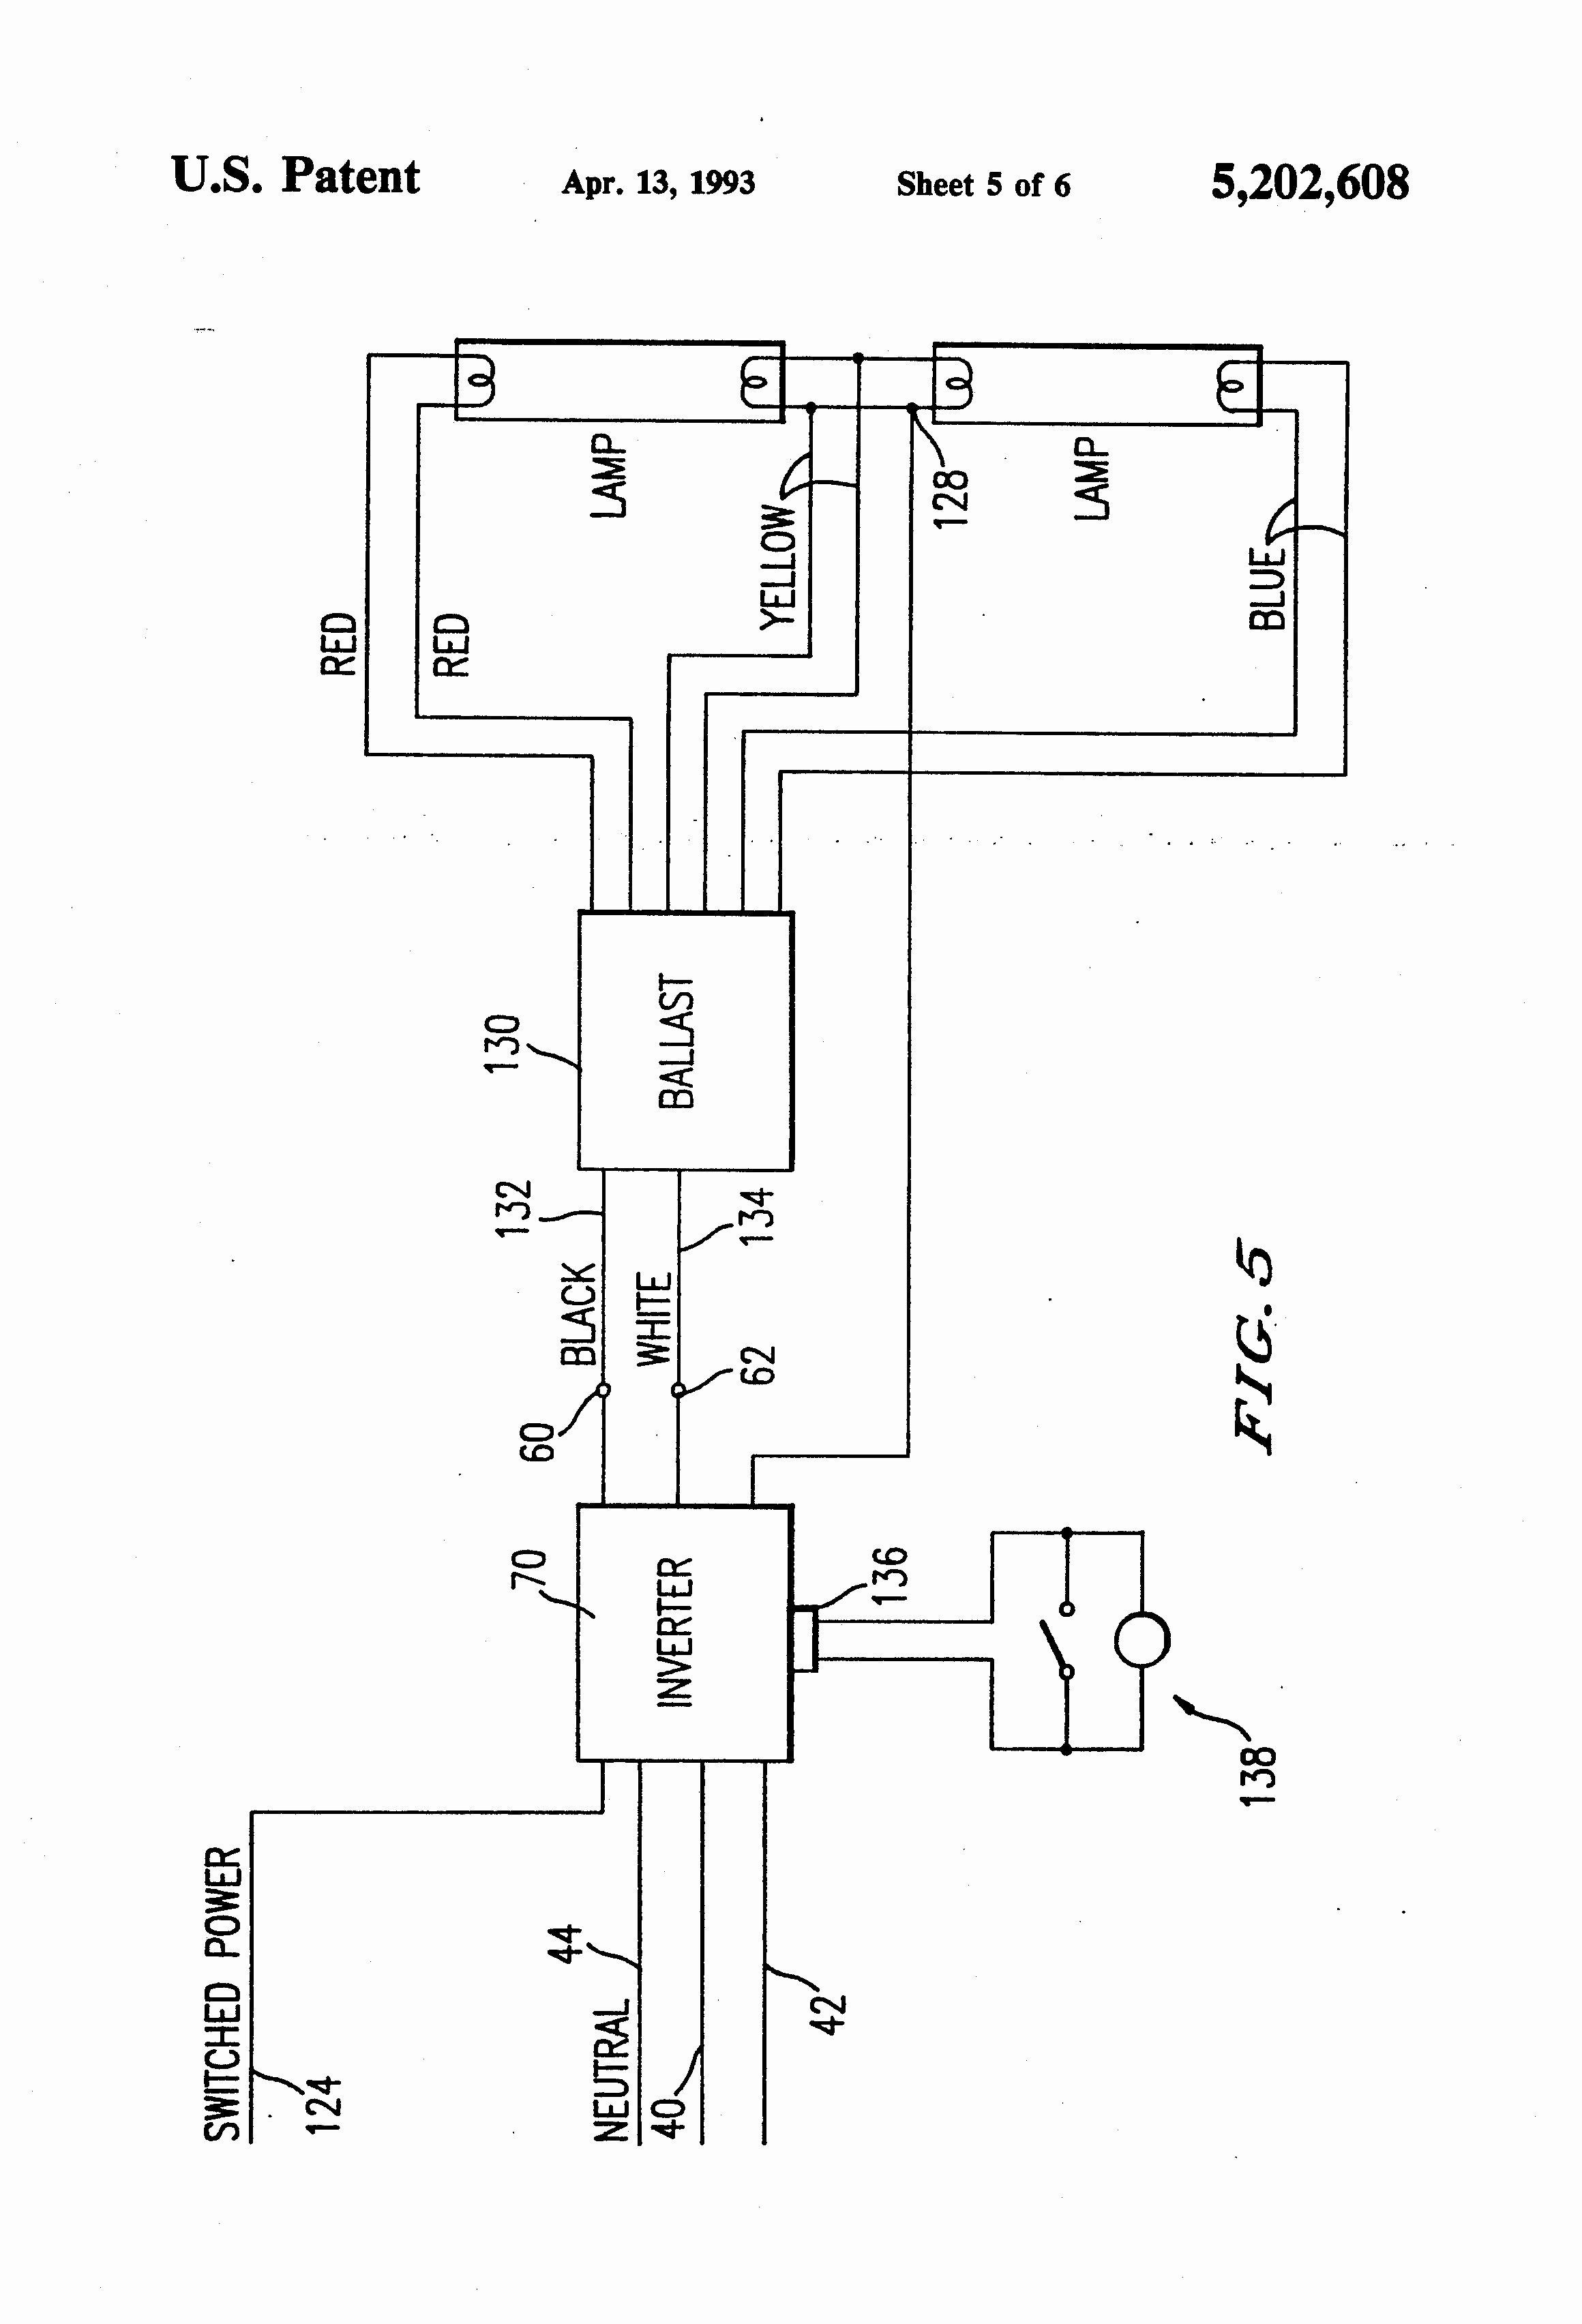 Jacobs Electronics Wiring Diagram from mainetreasurechest.com